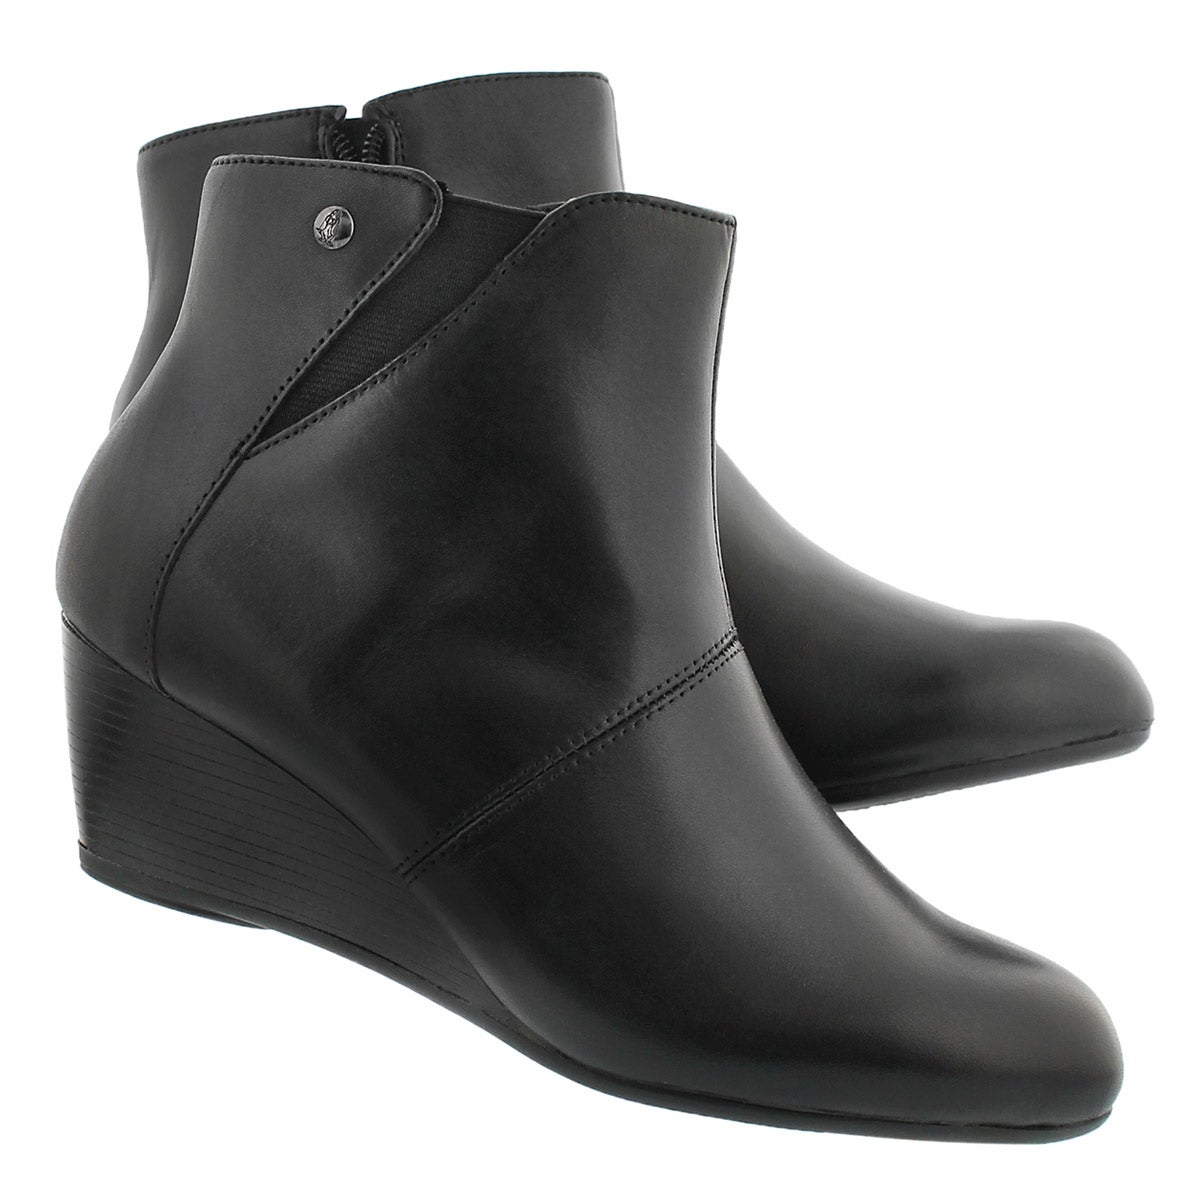 Lds Poised Rhea black WP wedge bootie